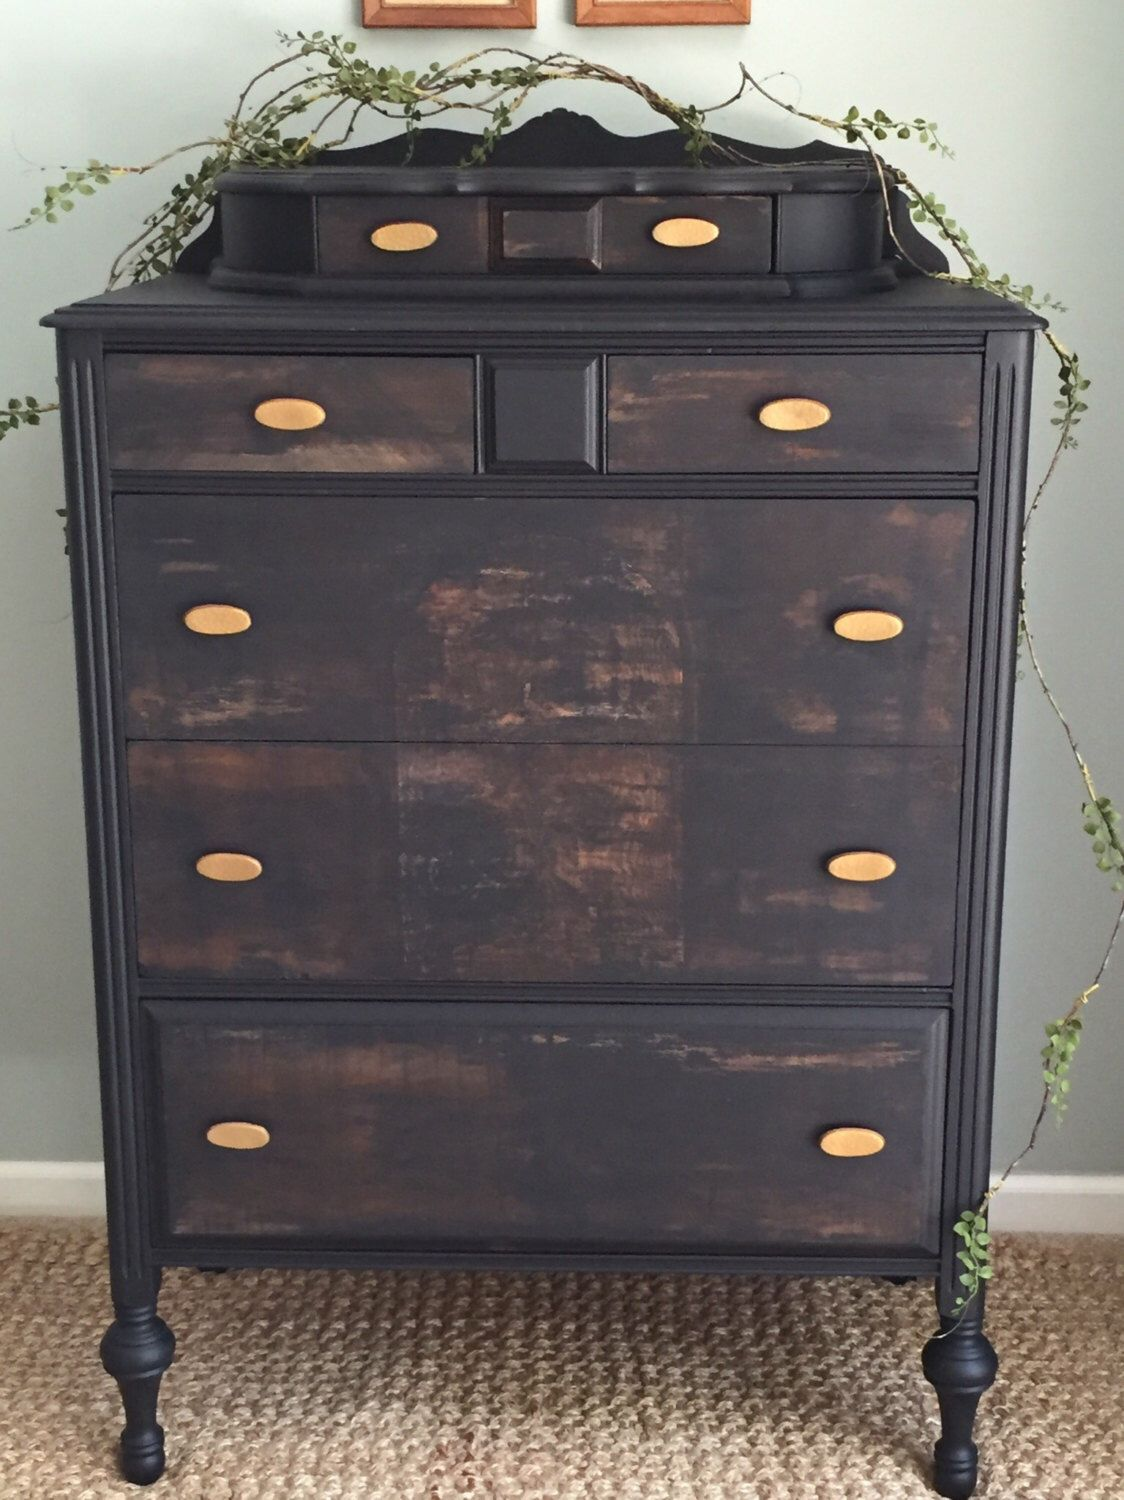 Tall Boy Black & Papered Vintage Dresser •Free Shipping